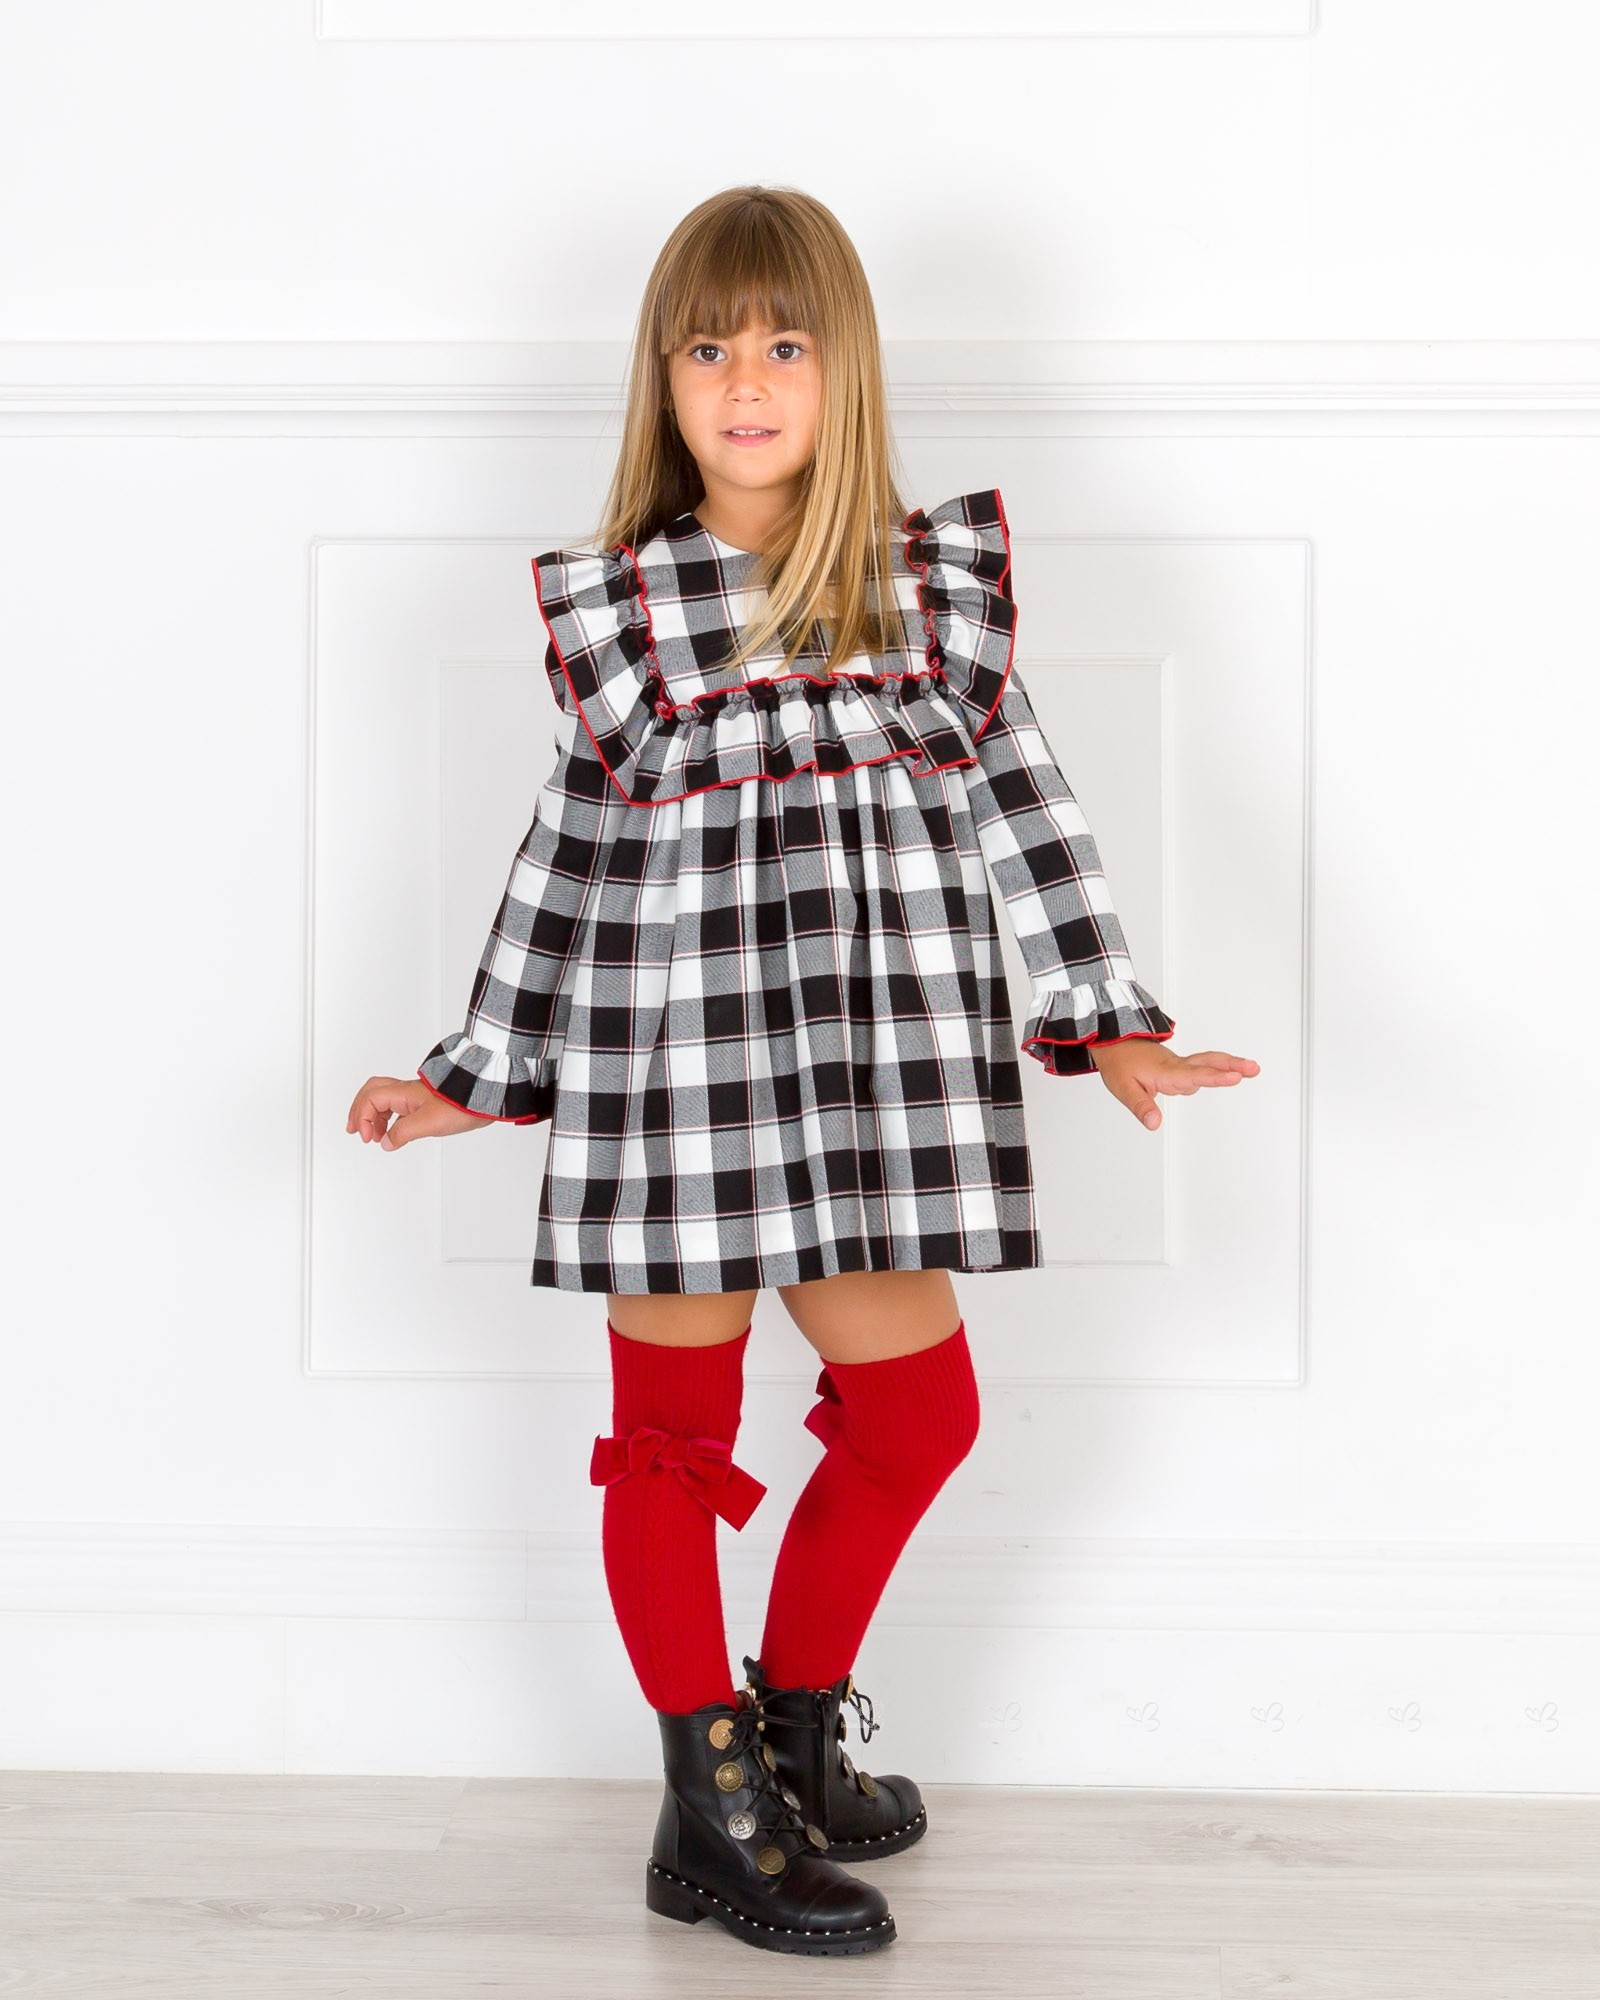 Girls Black White Checked Dress Collection Outfit Missbaby